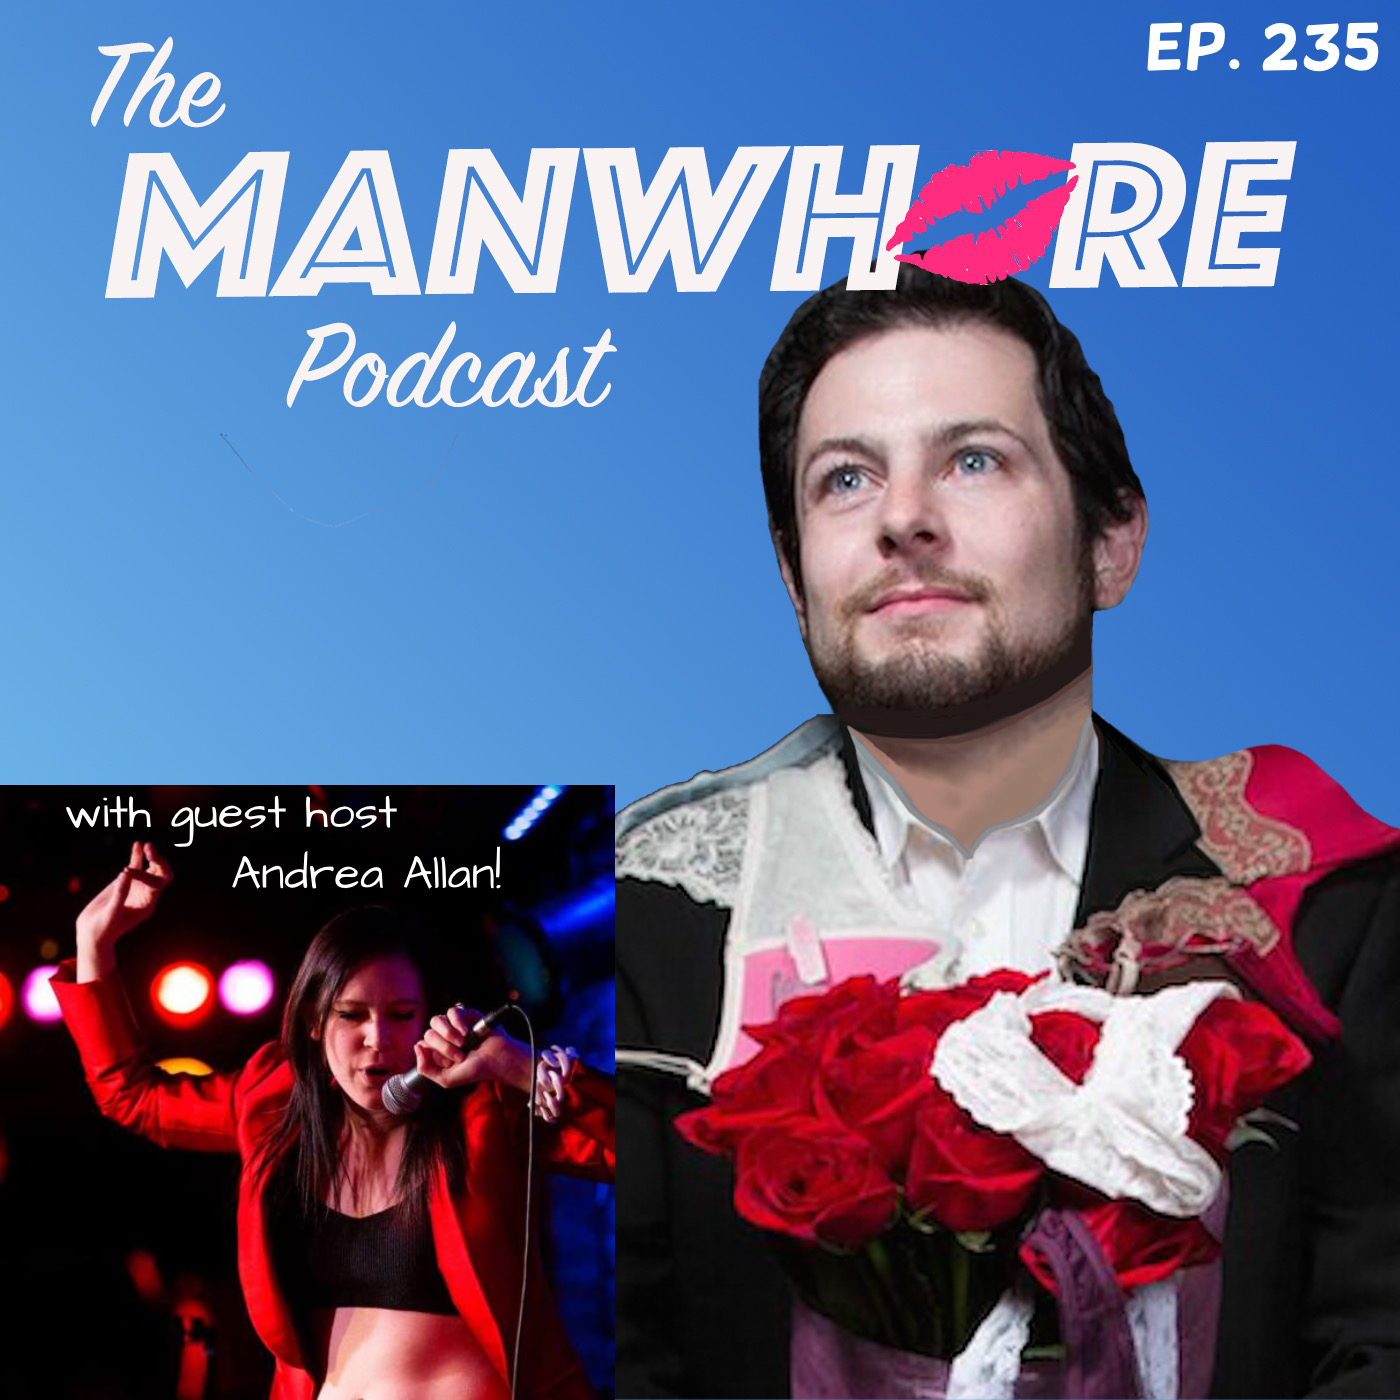 The Manwhore Podcast: A Sex-Positive Quest - Ep. 235: Brett Kavanaugh, Confidence, and Believing Woman (guest host Andrea Allan)